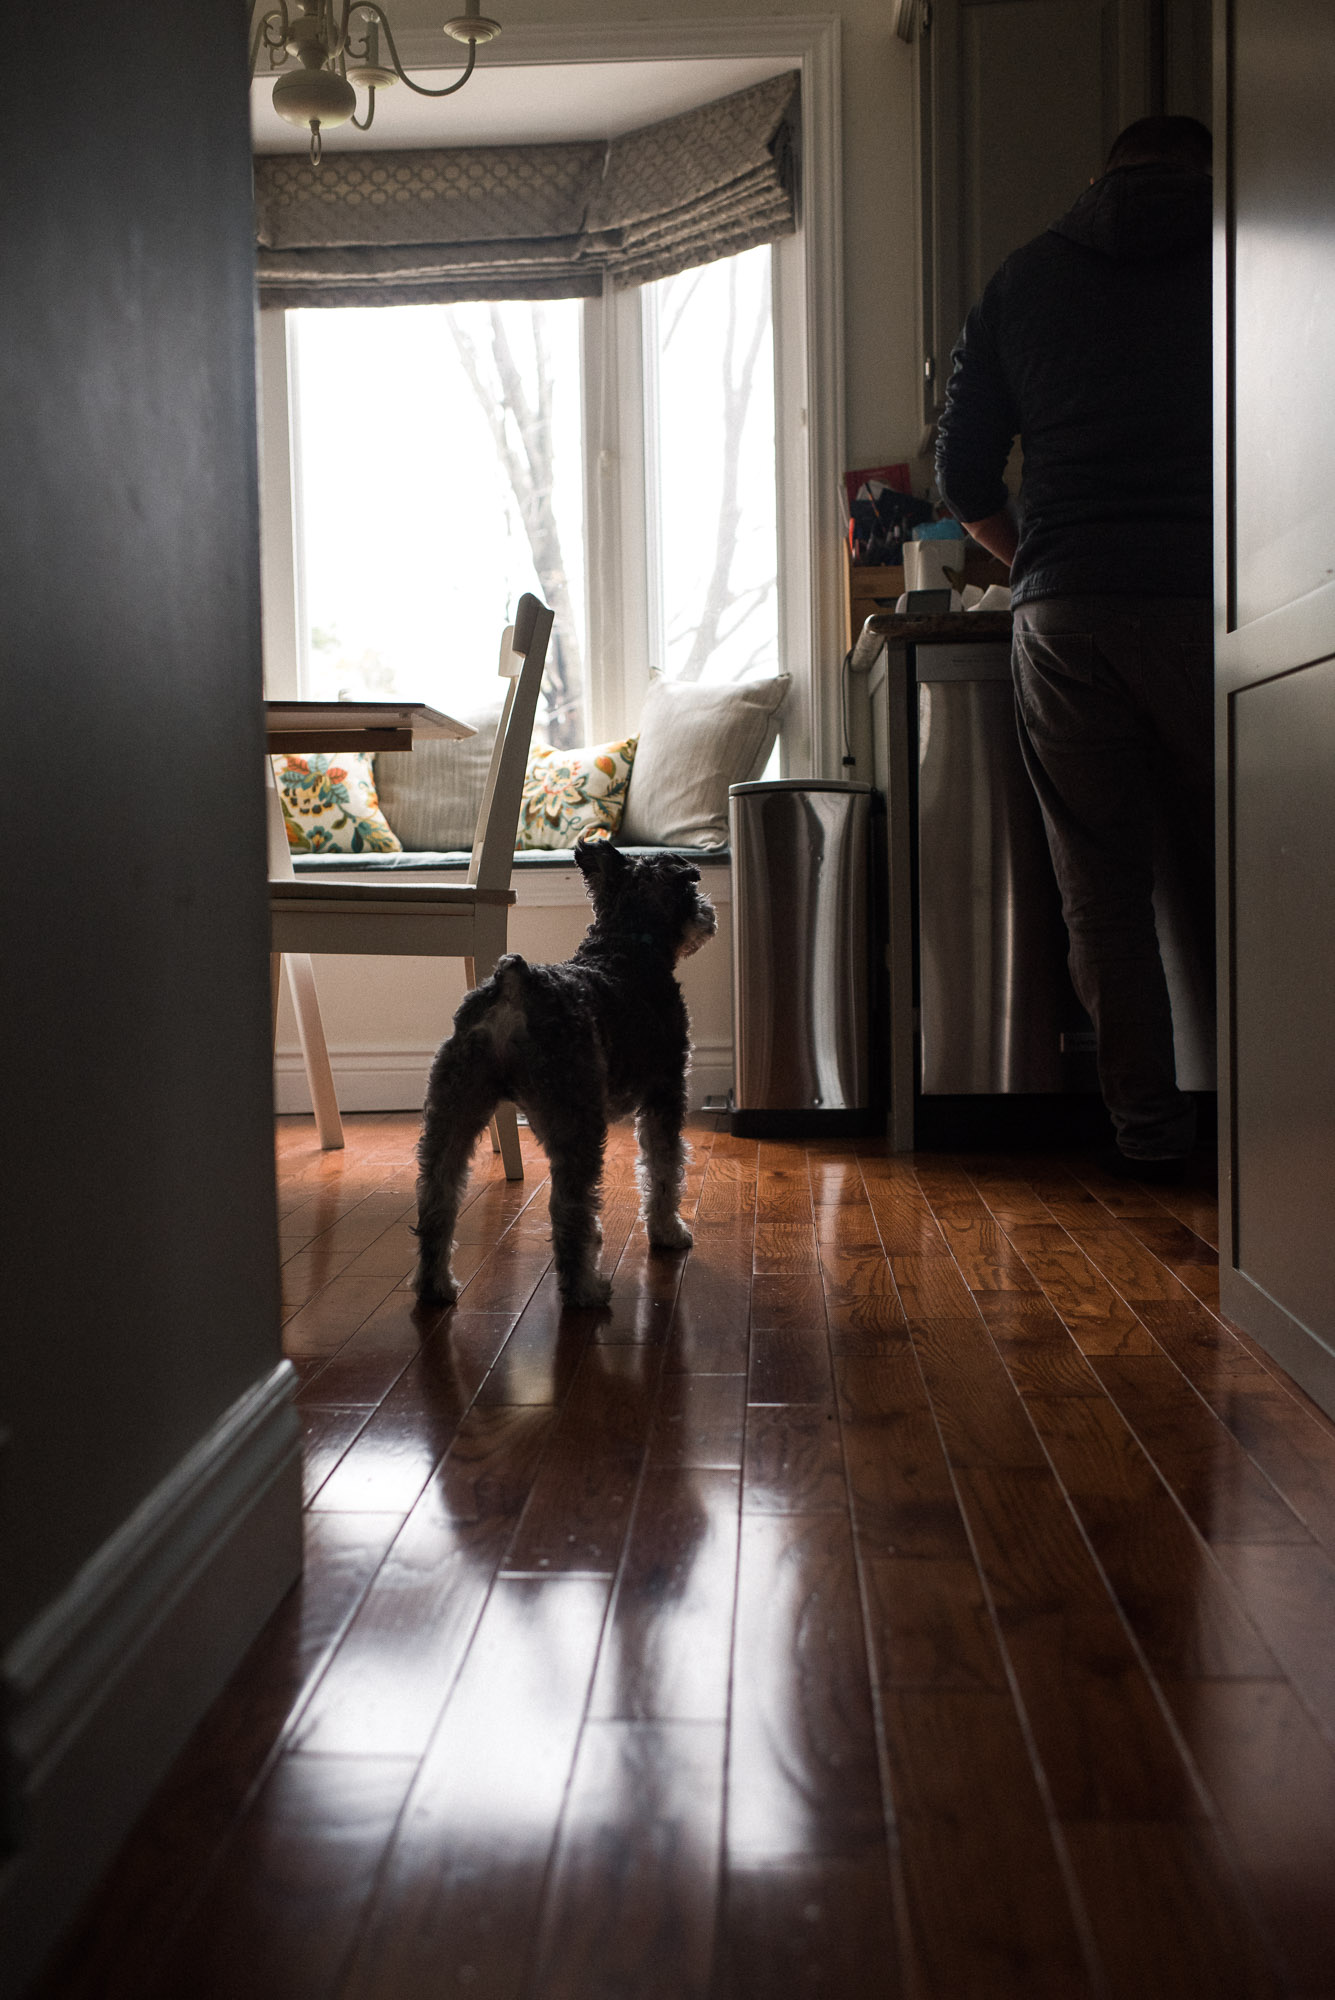 dog looks up toward counter in the kitchen